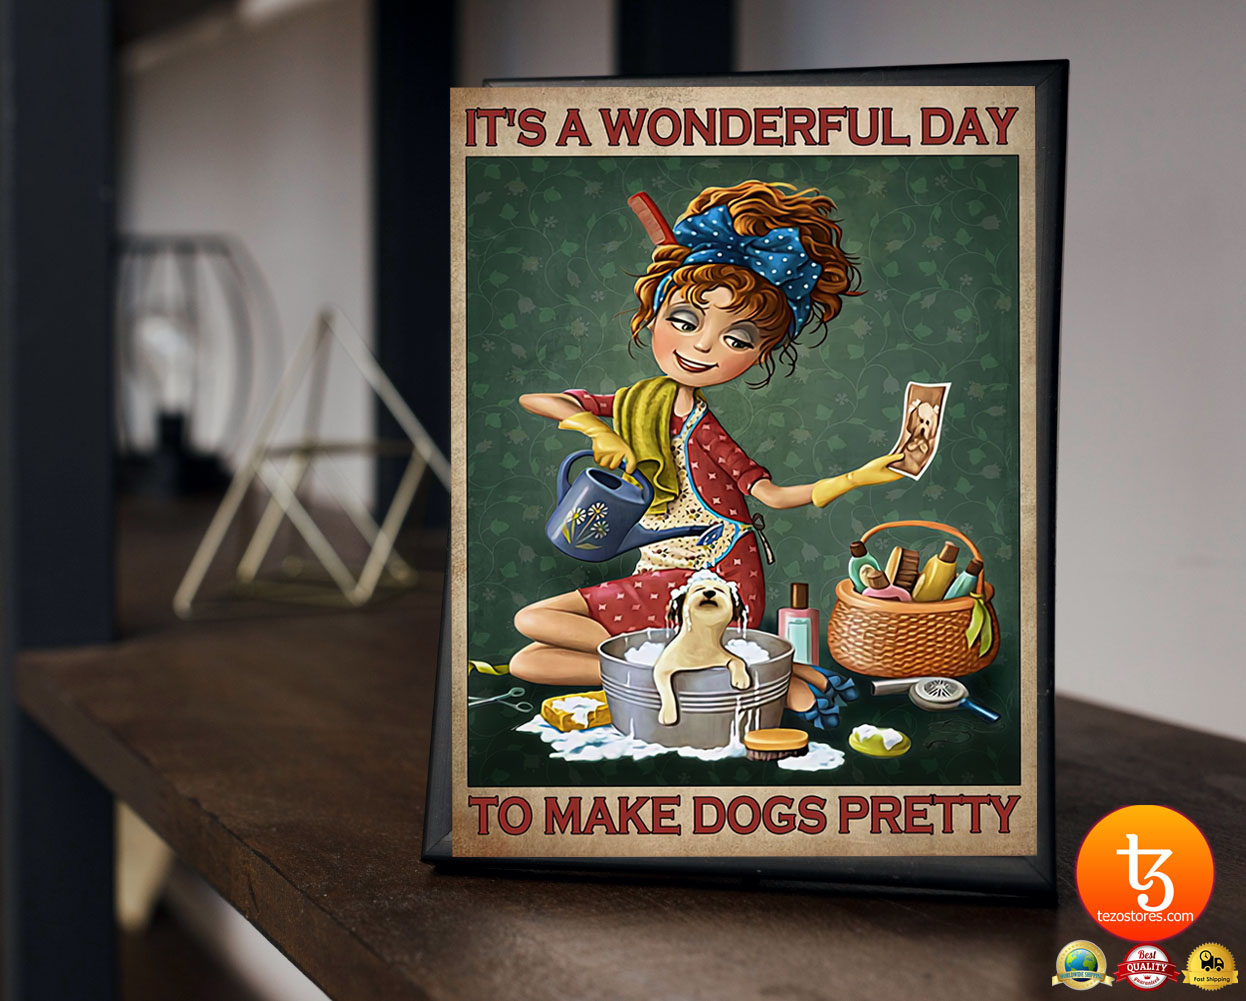 Grooming It's a wonderful day to make dogs pretty poster 19